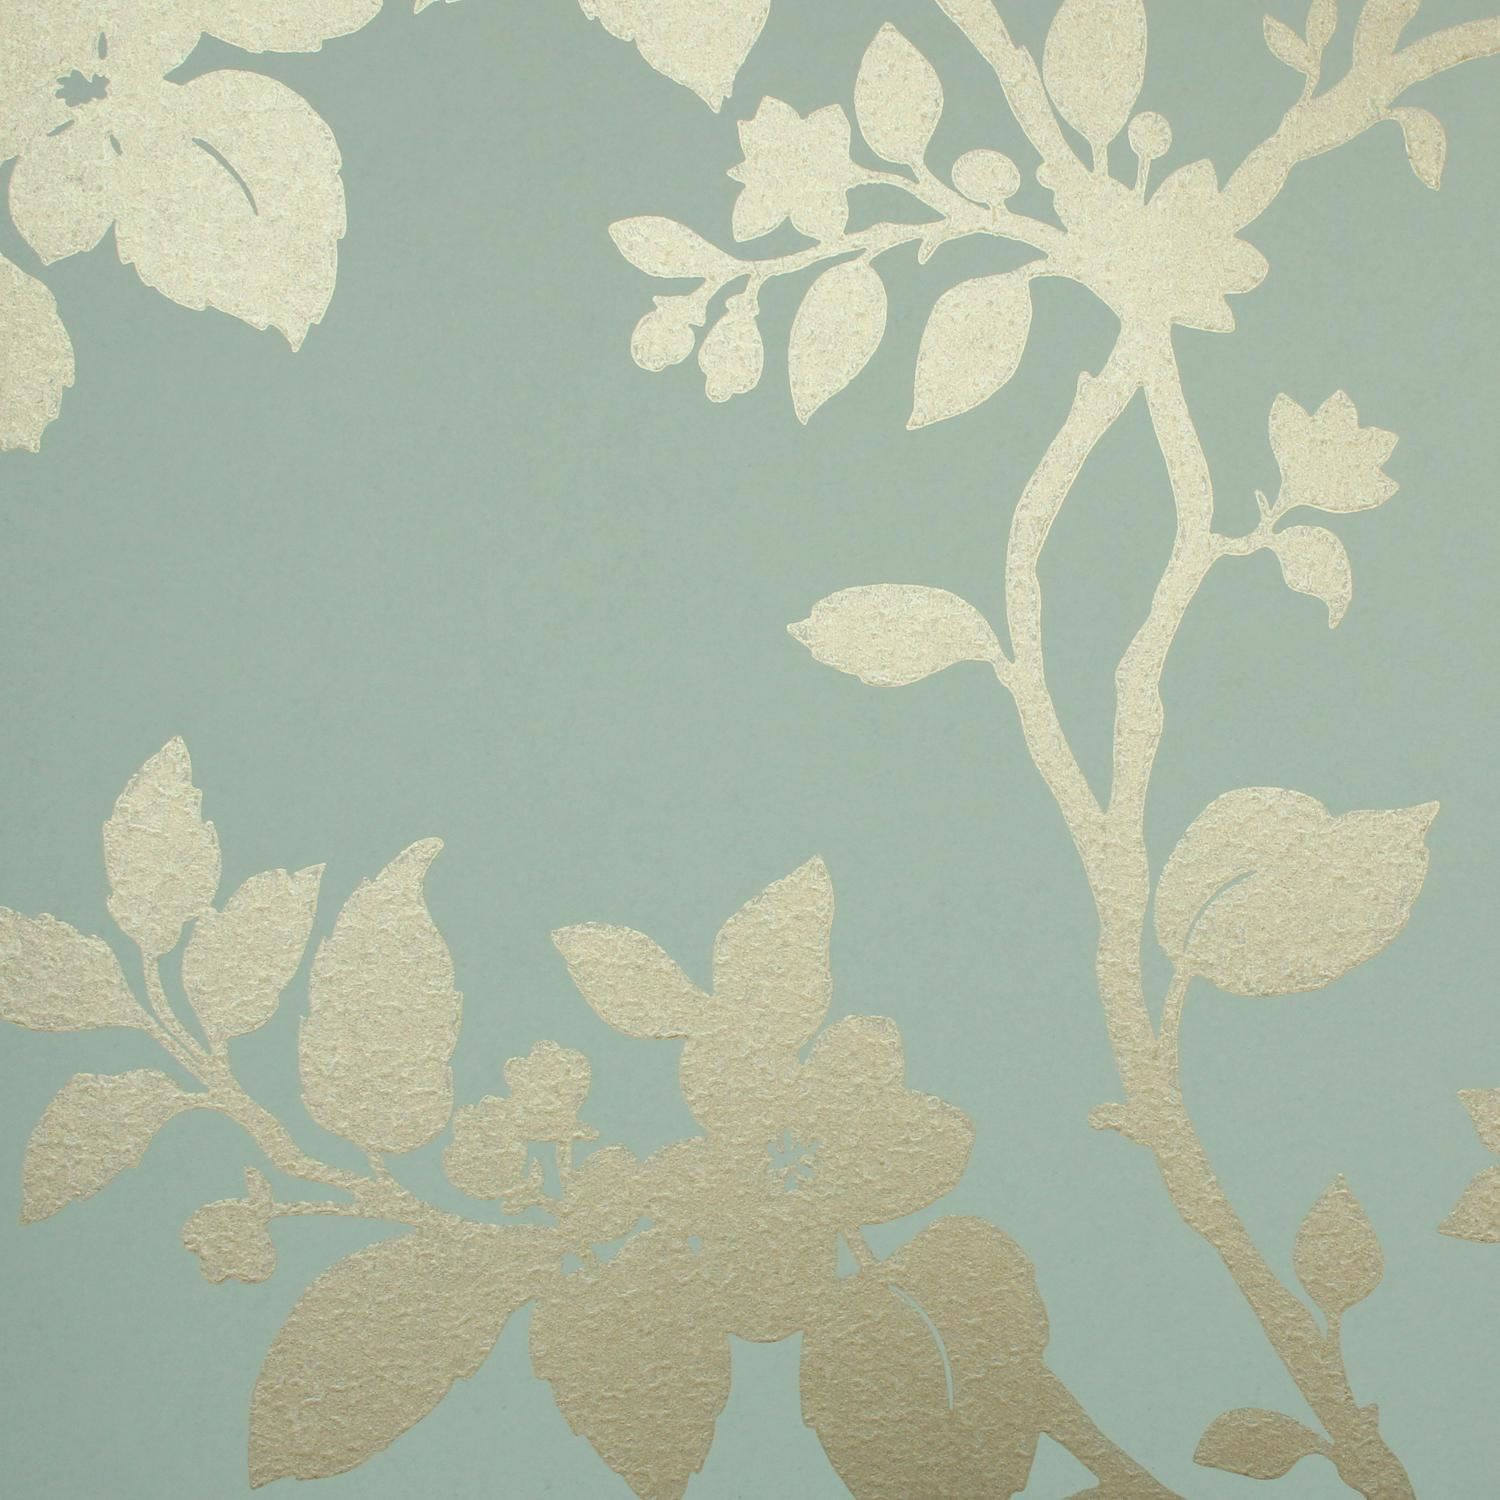 Duck Egg Wallpaper Bedroom Ideas Bedroom Wallpaper Duck Egg Blue | Bedroom Wallpaper